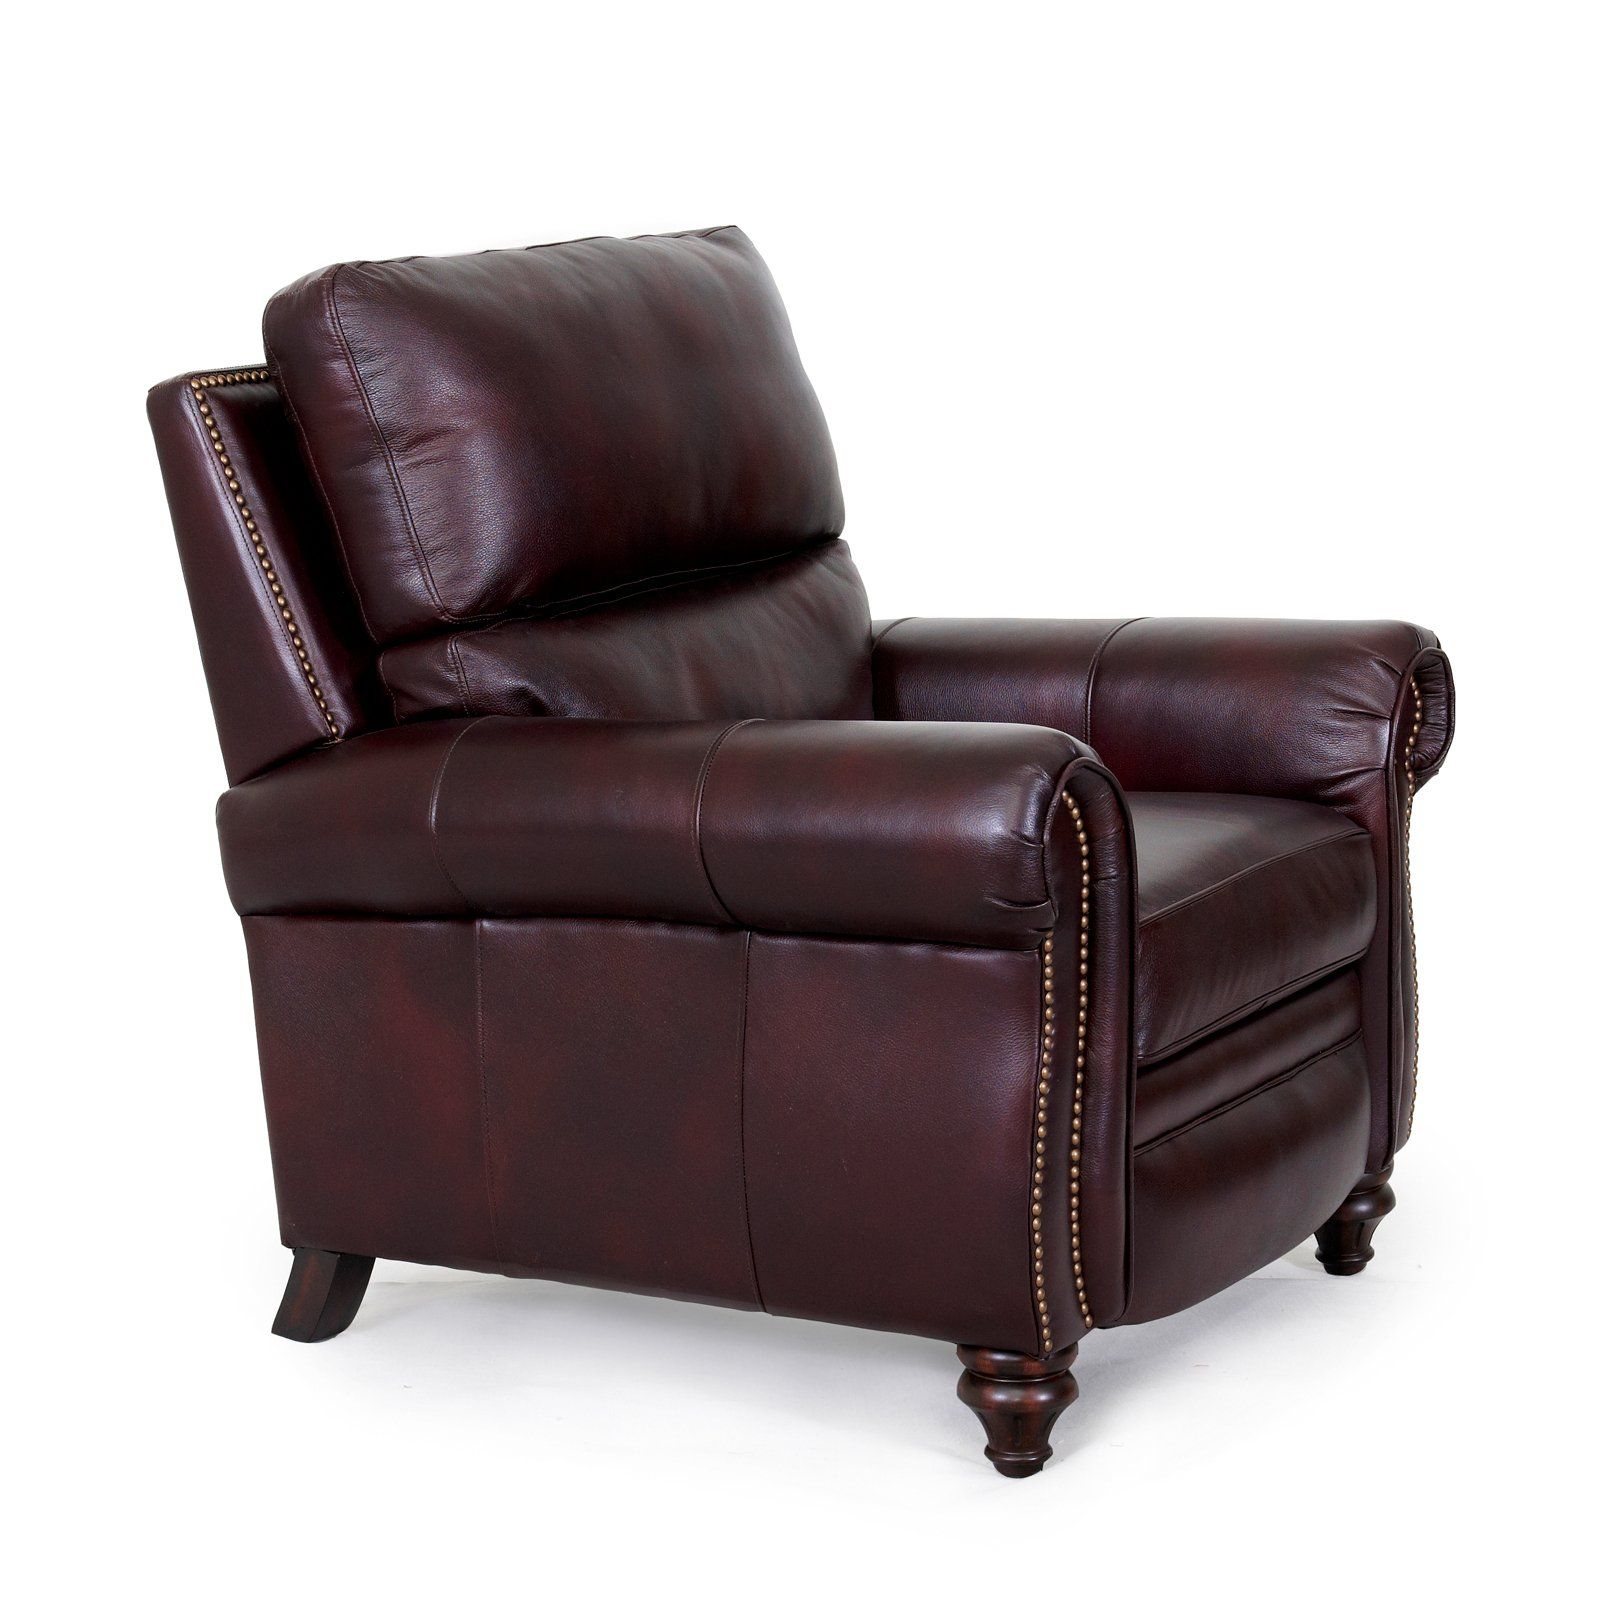 Leather Recliner Sofa Manchester